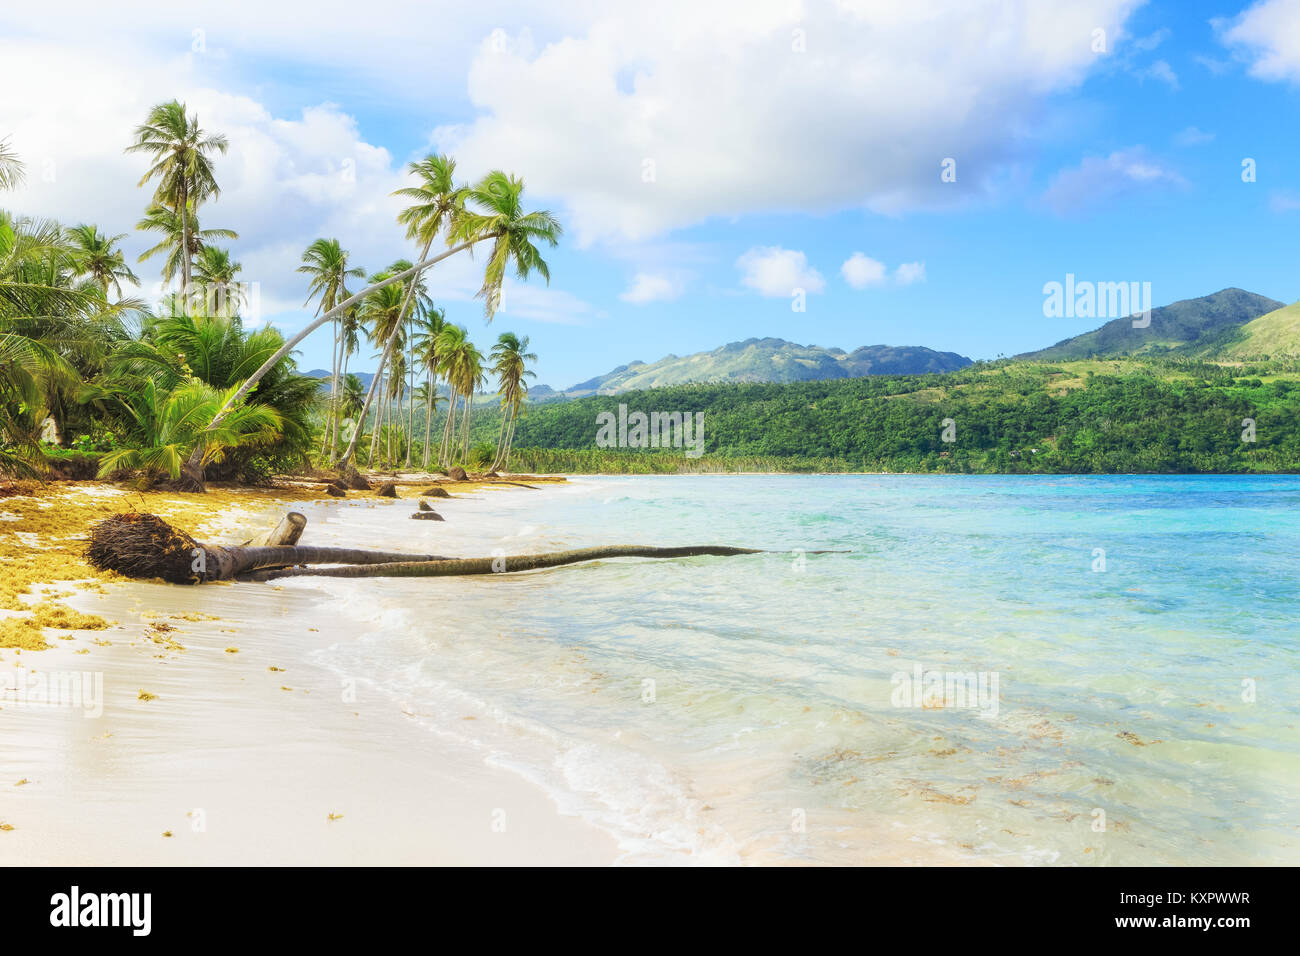 Panorama of famous secluded beach of Rincon, Las Galeras, Dominican Republic - Stock Image